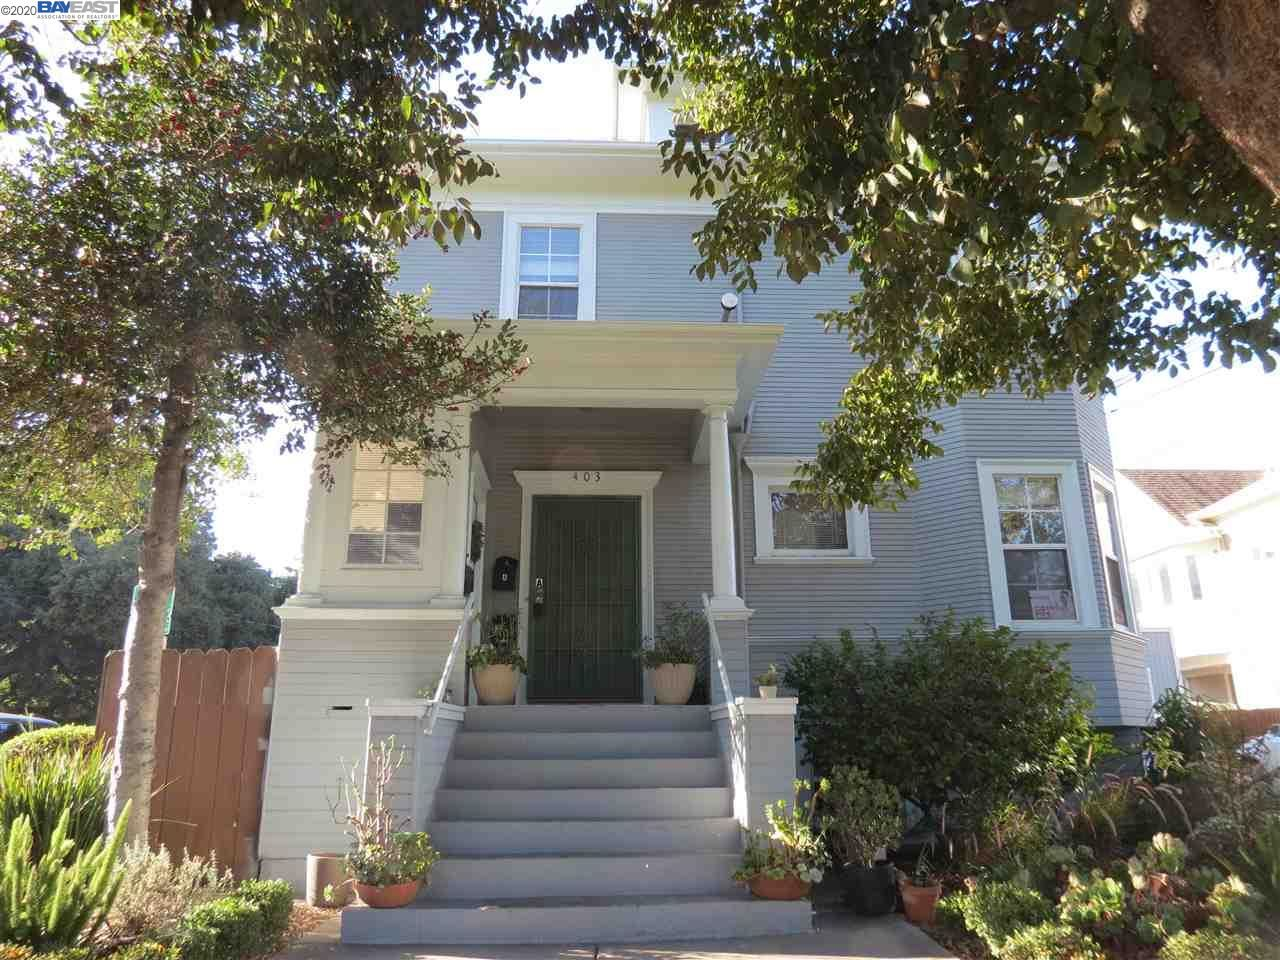 Photo for 403 37Th St, OAKLAND, CA 94609 (MLS # 40925852)